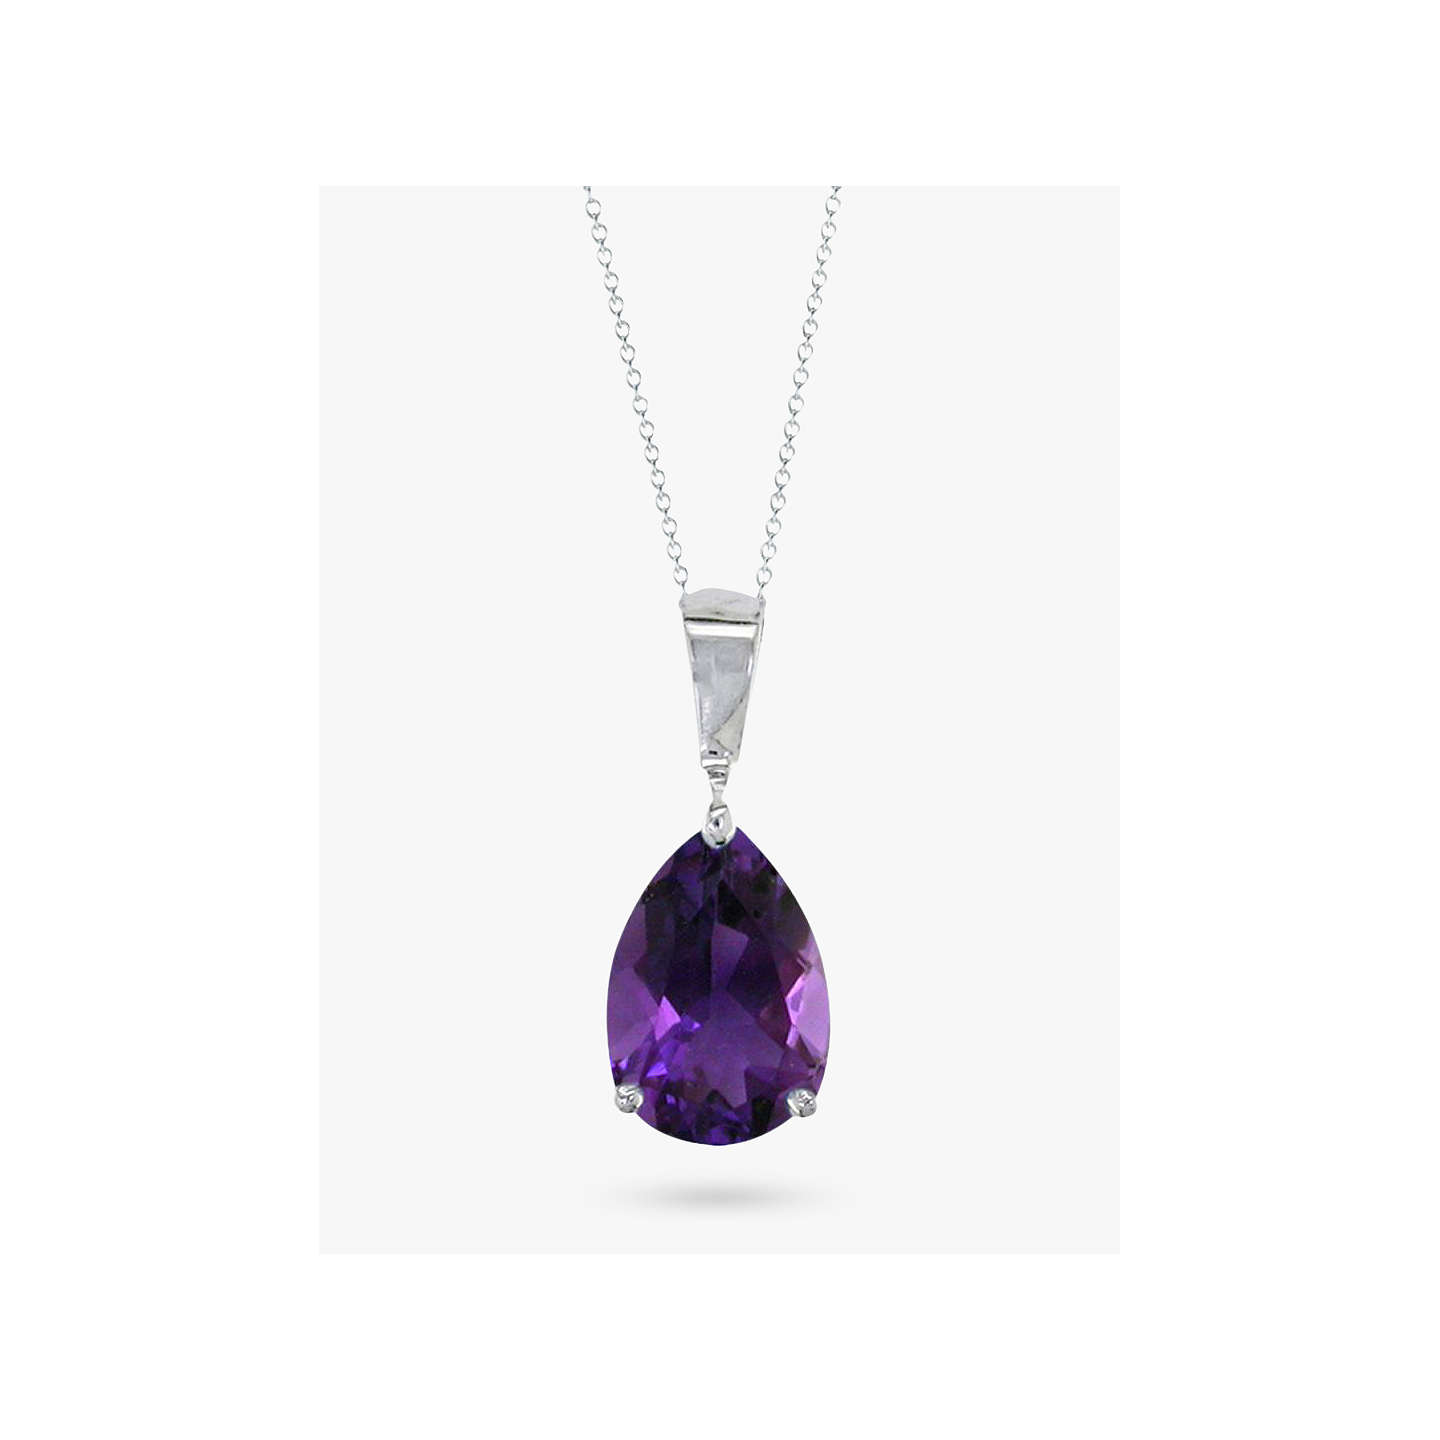 johnlewis online at lewis white rsp gold jewellery com necklace main purple pdp pendant buyewa john amethyst ewa